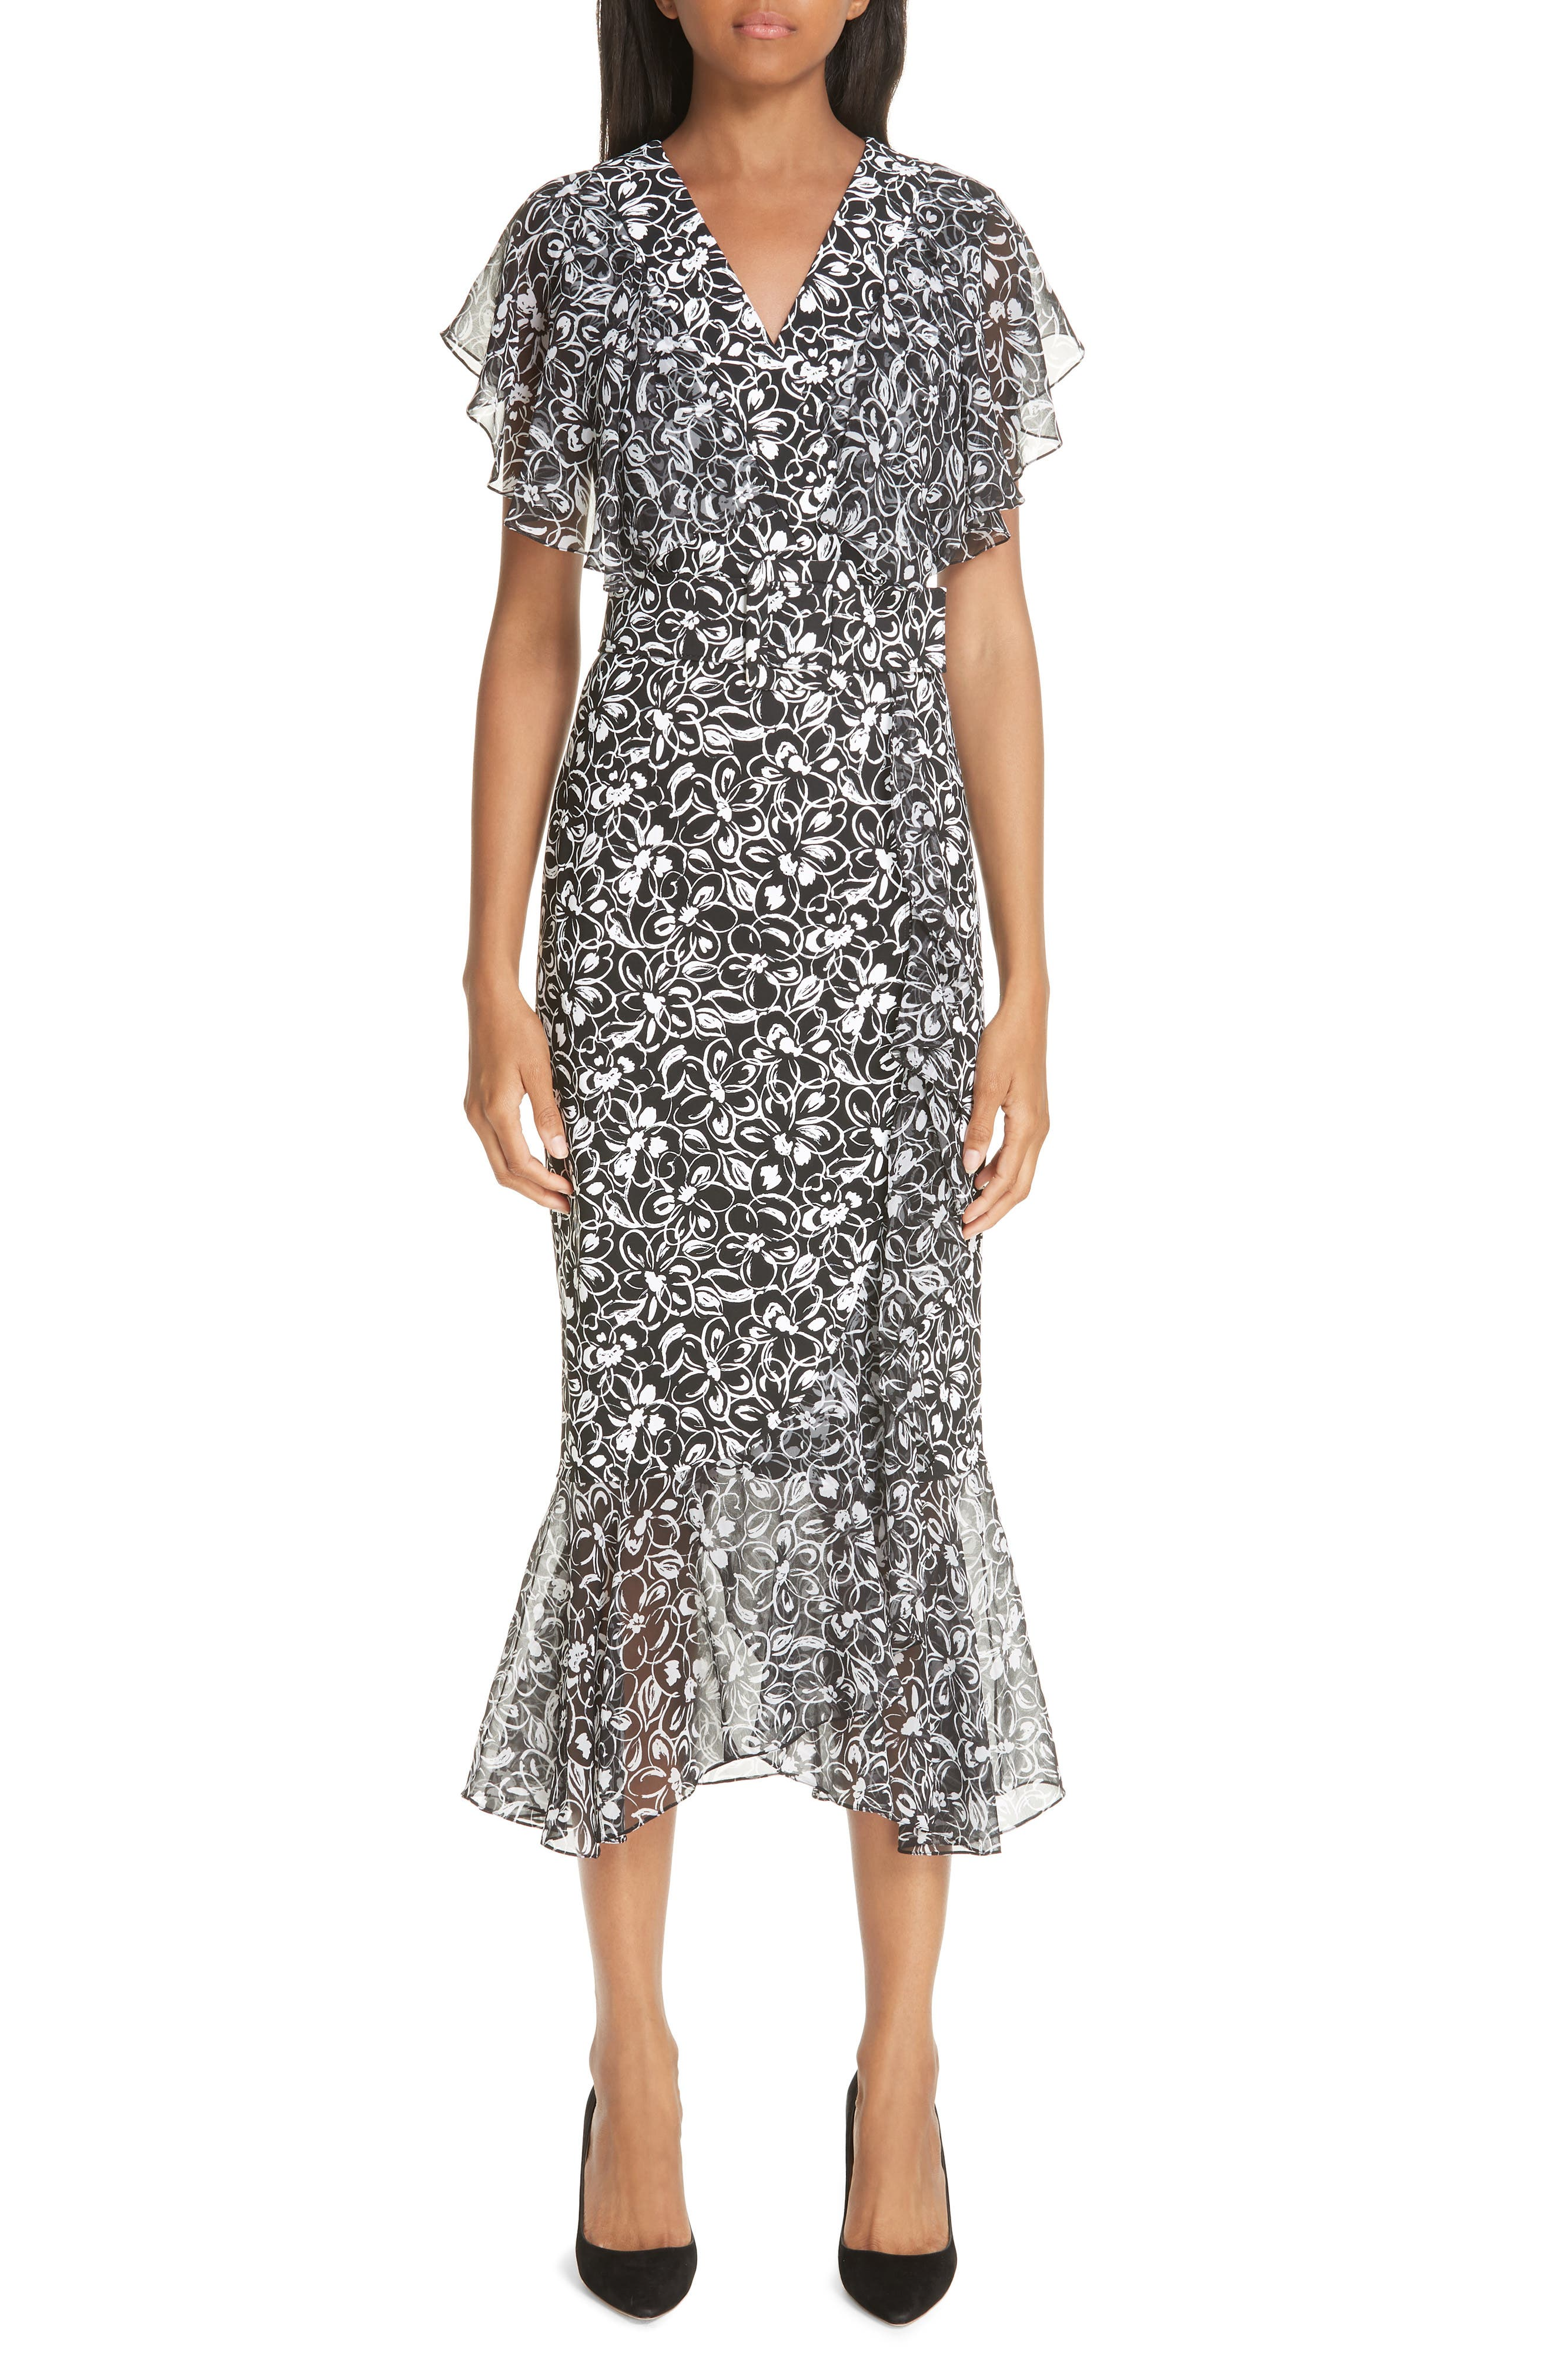 Michael Kors Painterly Floral Belted Ruffle Trim Dress, Black